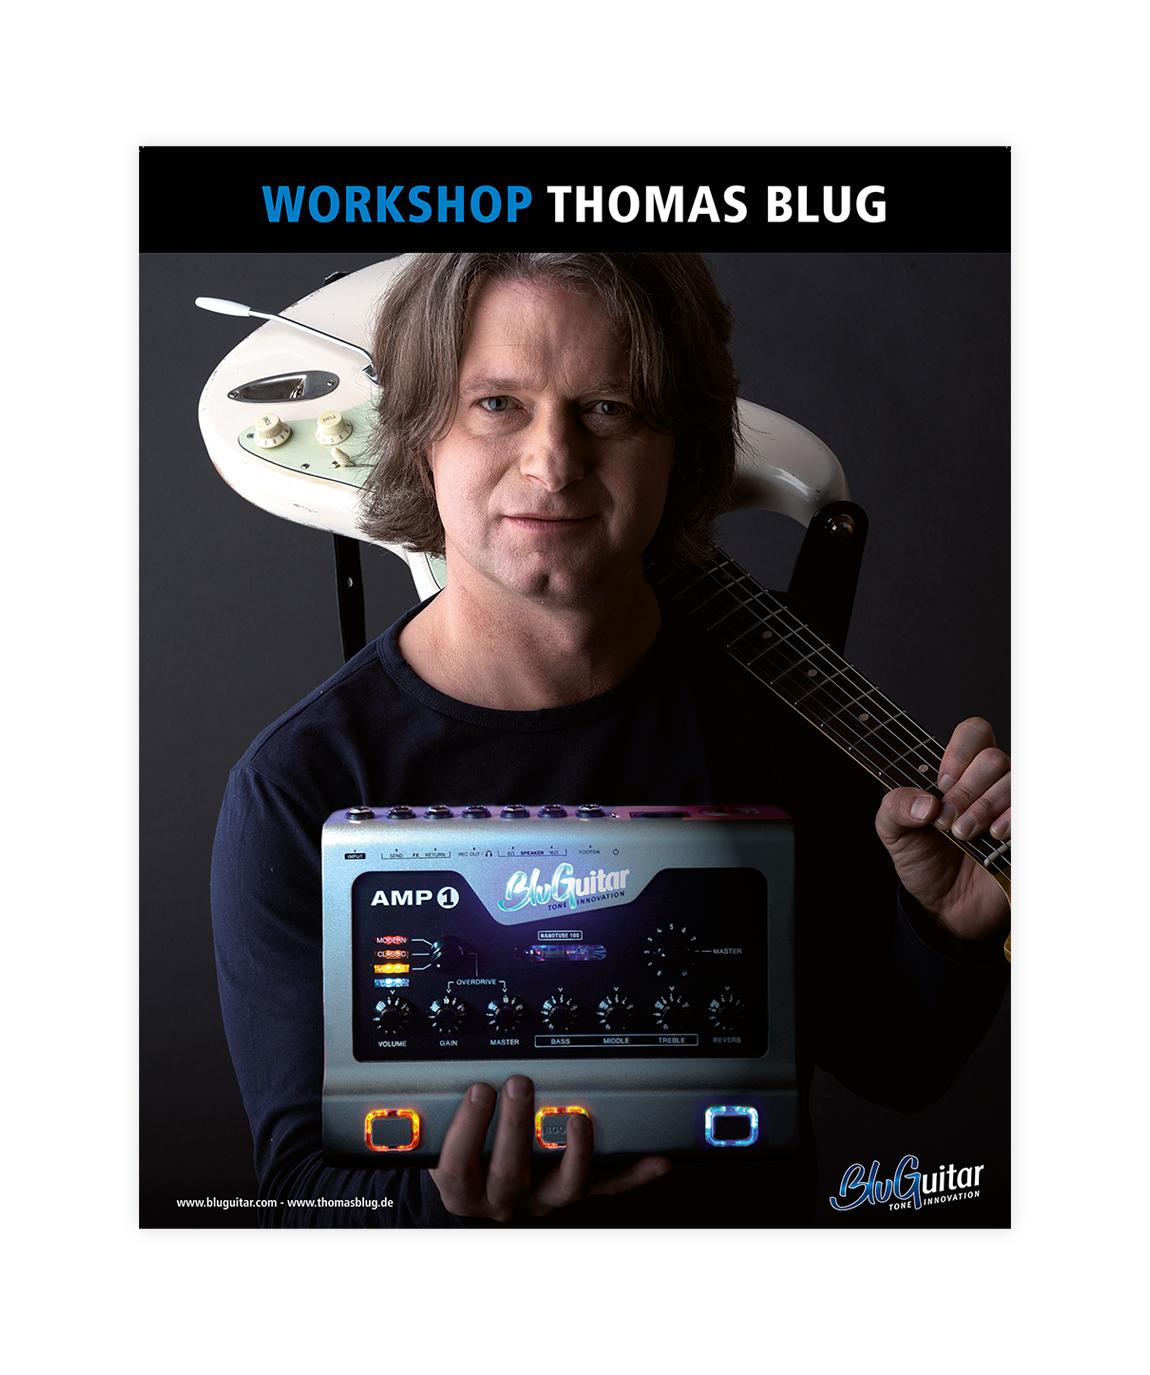 Plakat_Workshop_BluGuitar-TN7iga01ljqBgjI